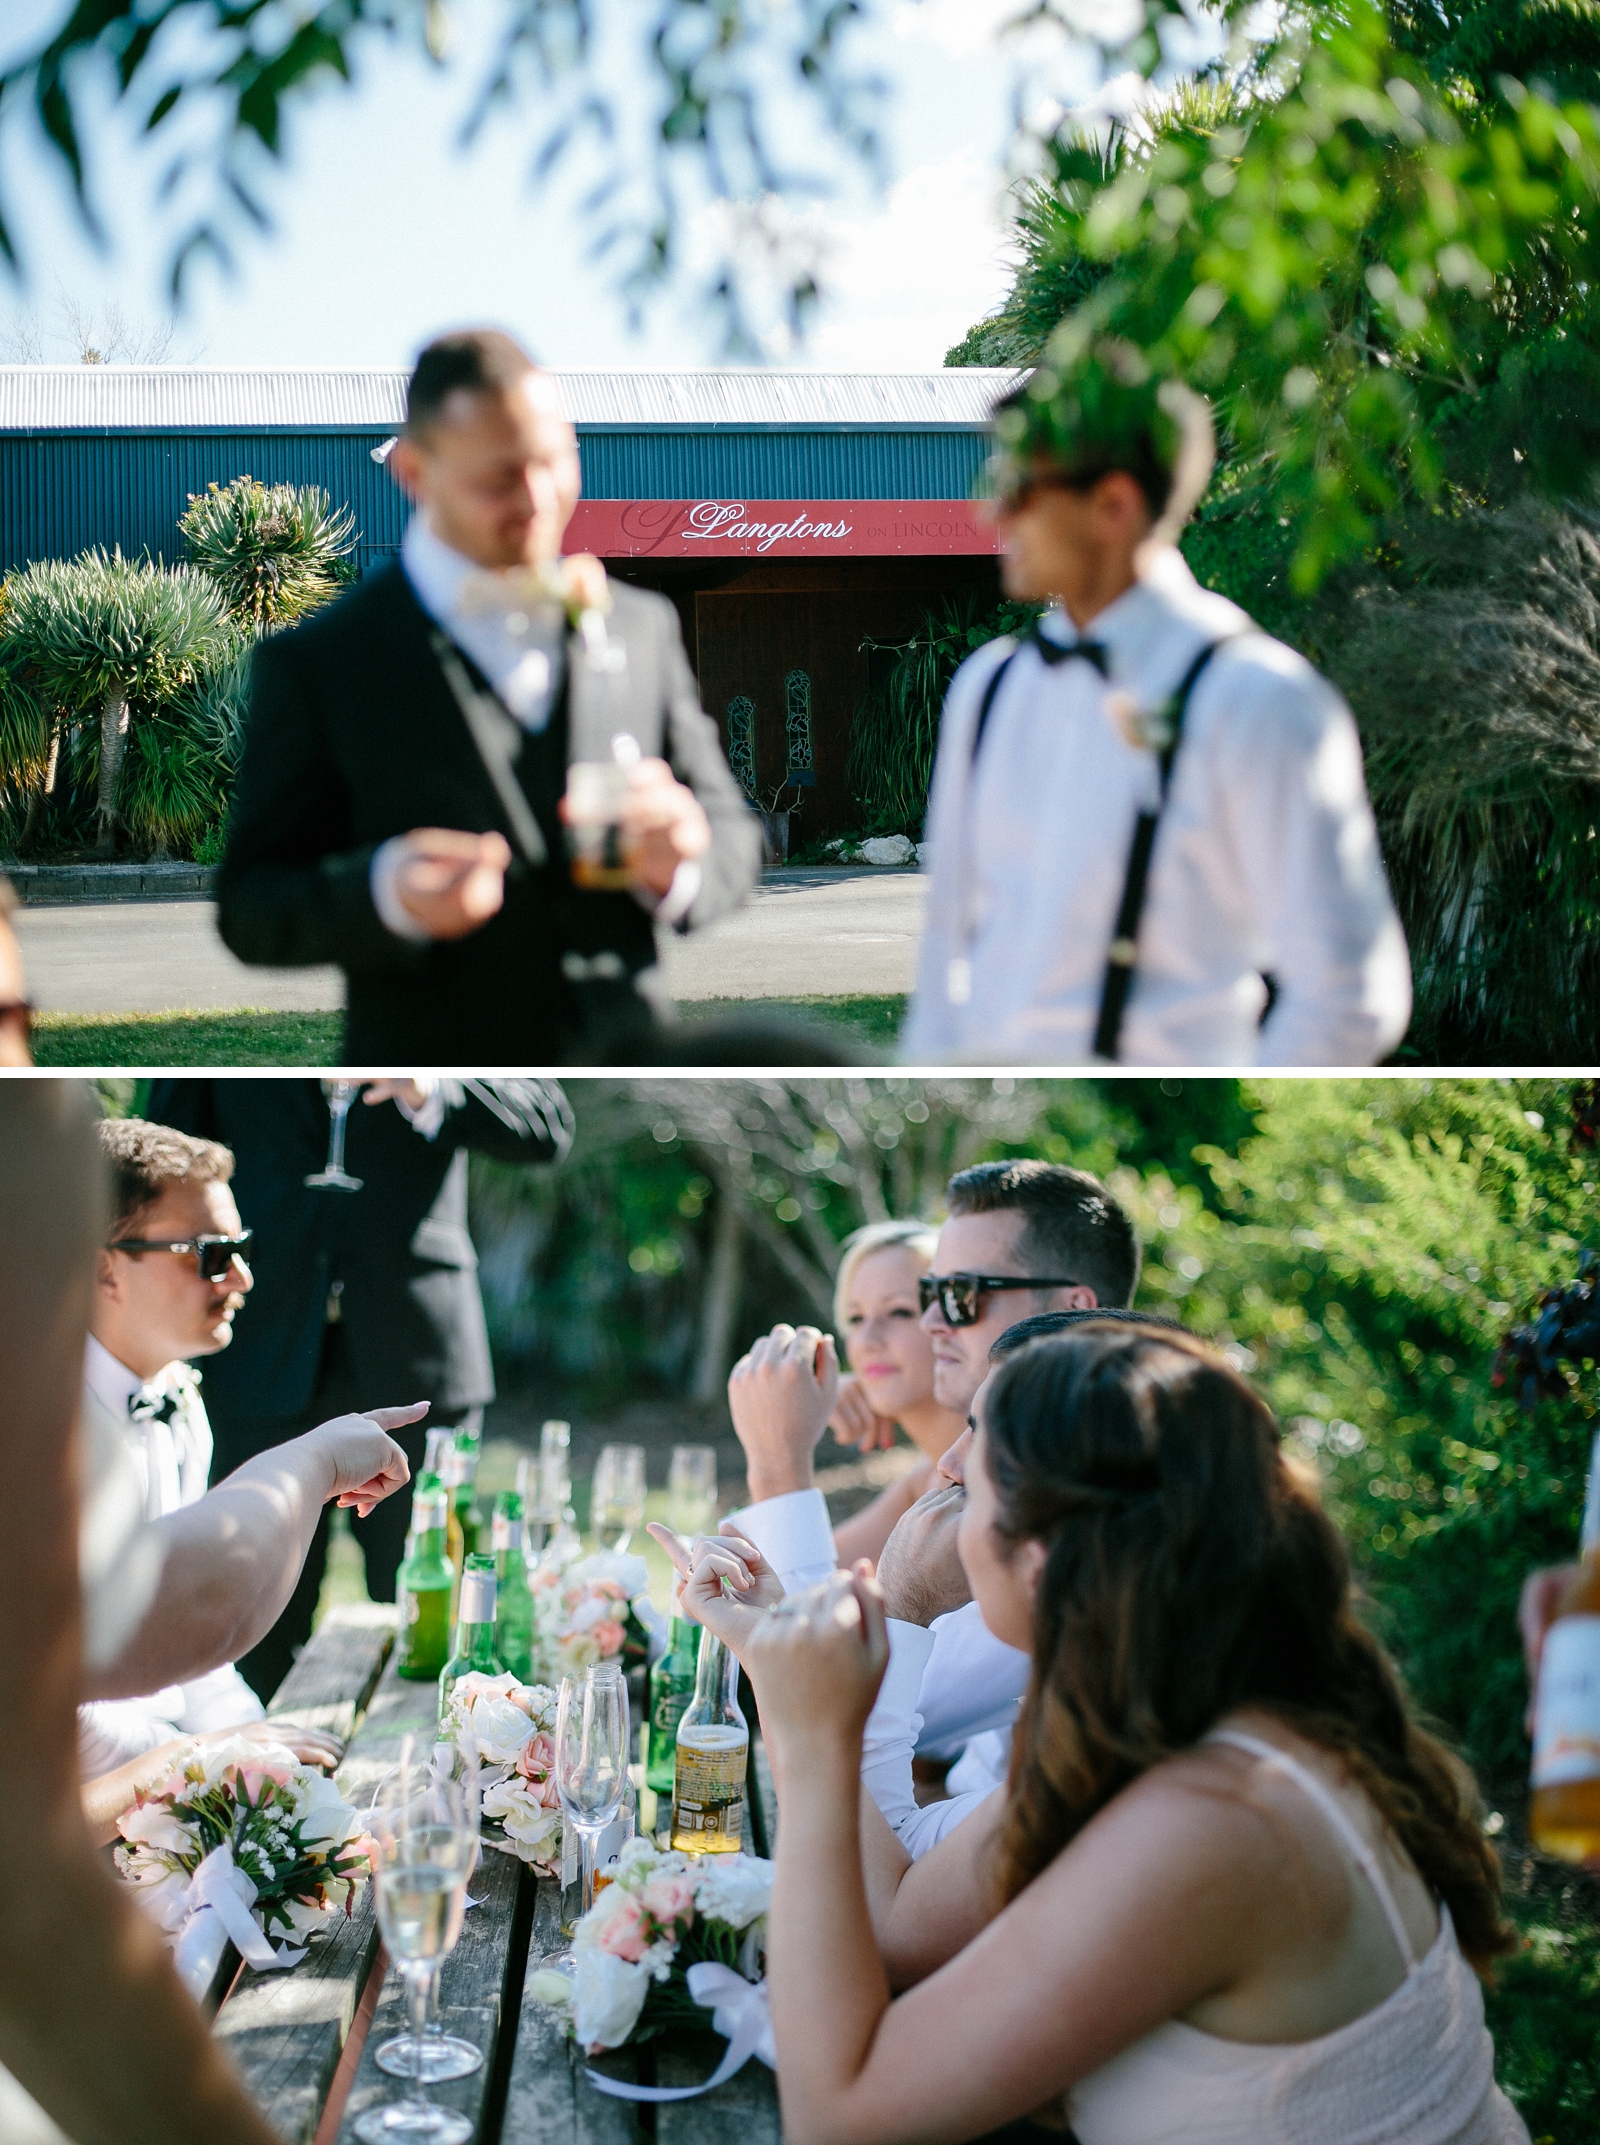 ConnorLaura_Auckland Wedding Photographer_Patty Lagera_0087.jpg